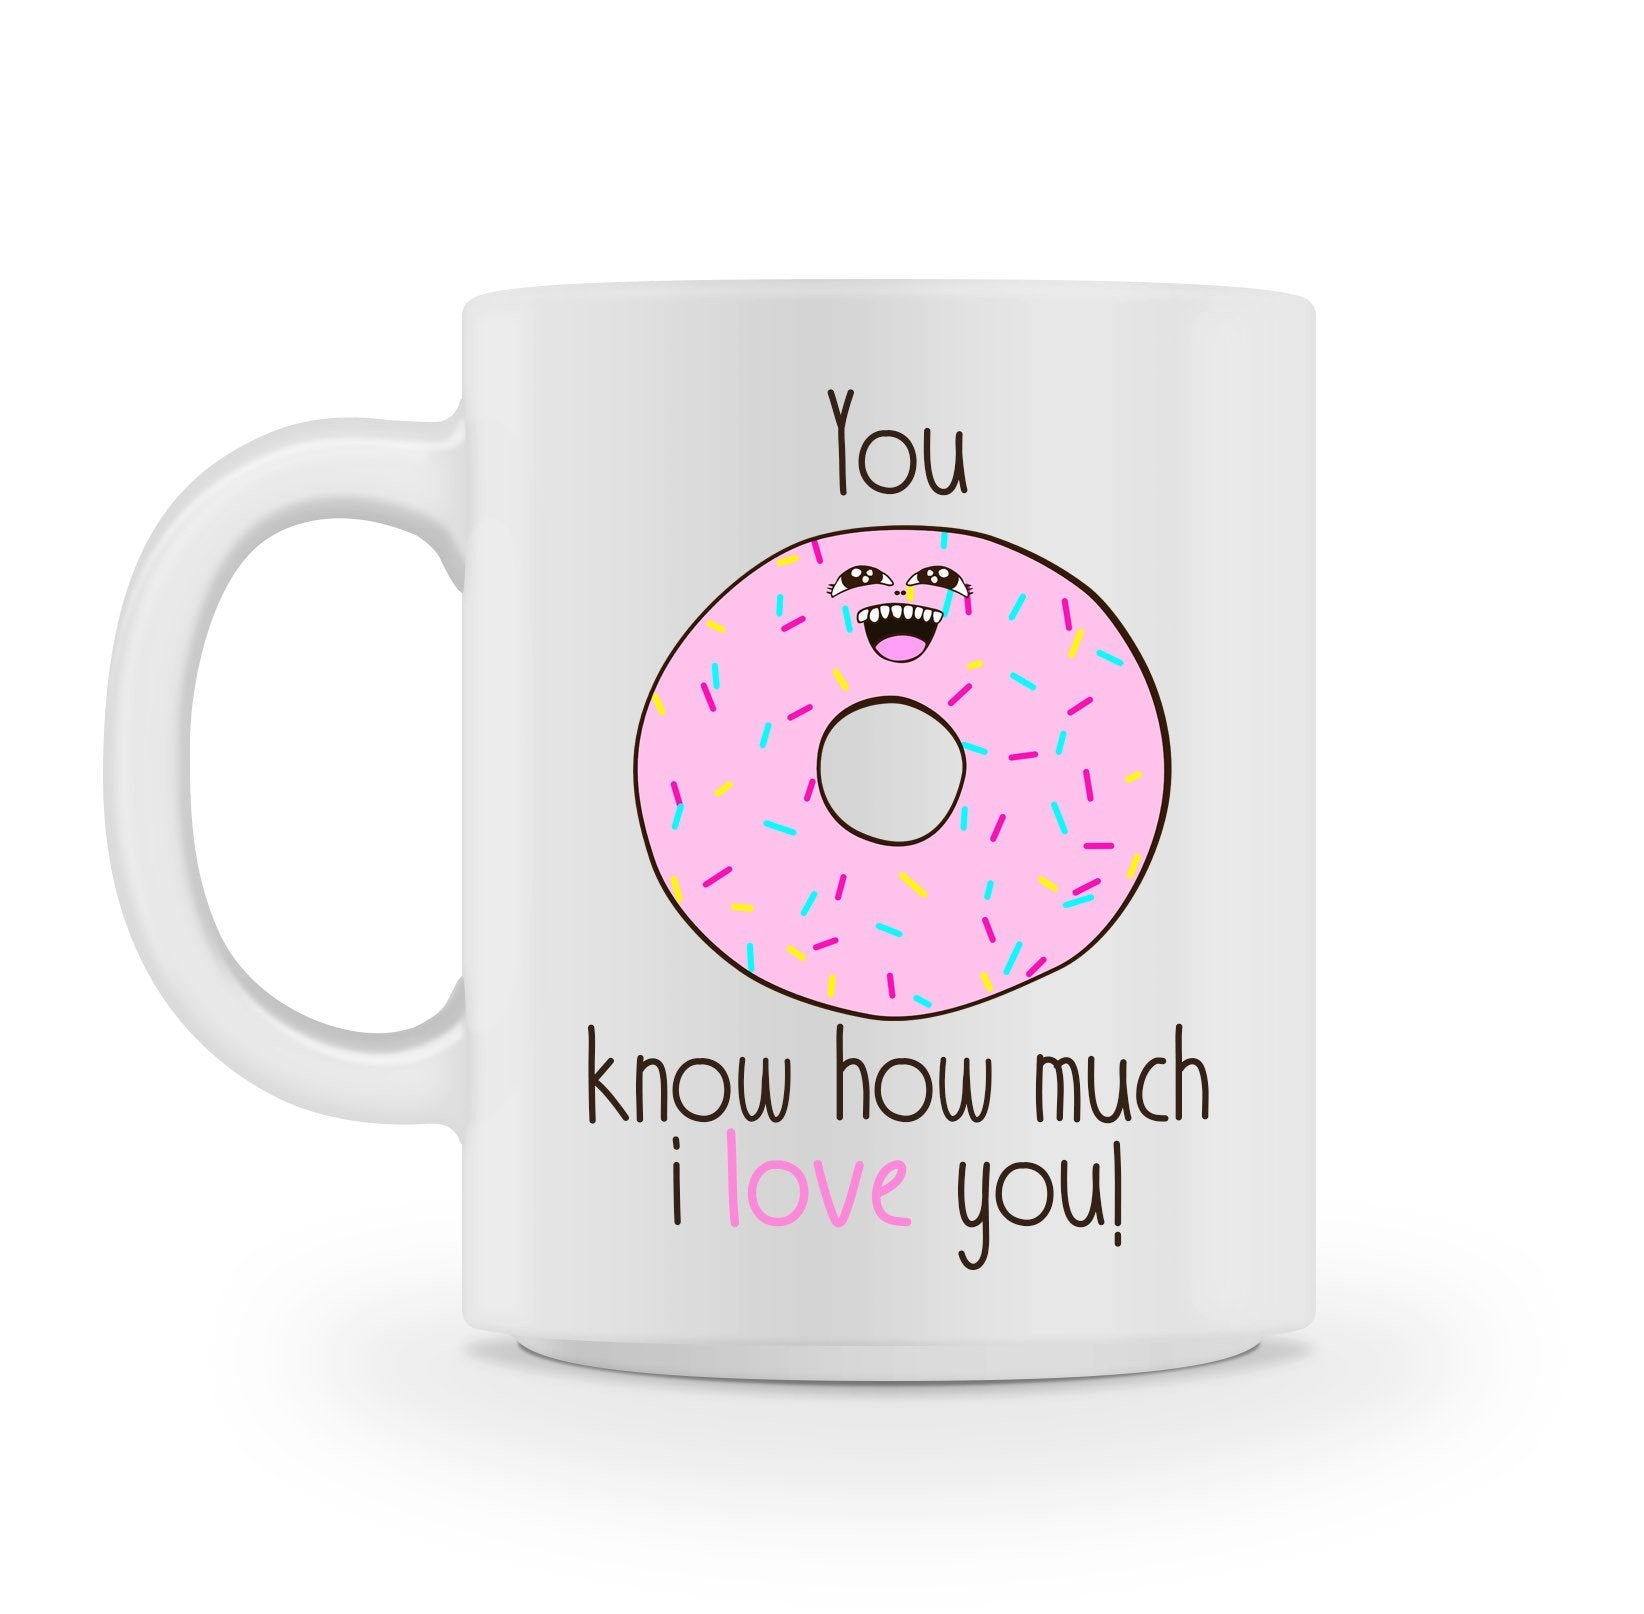 You DONUT know how much i love you MUG